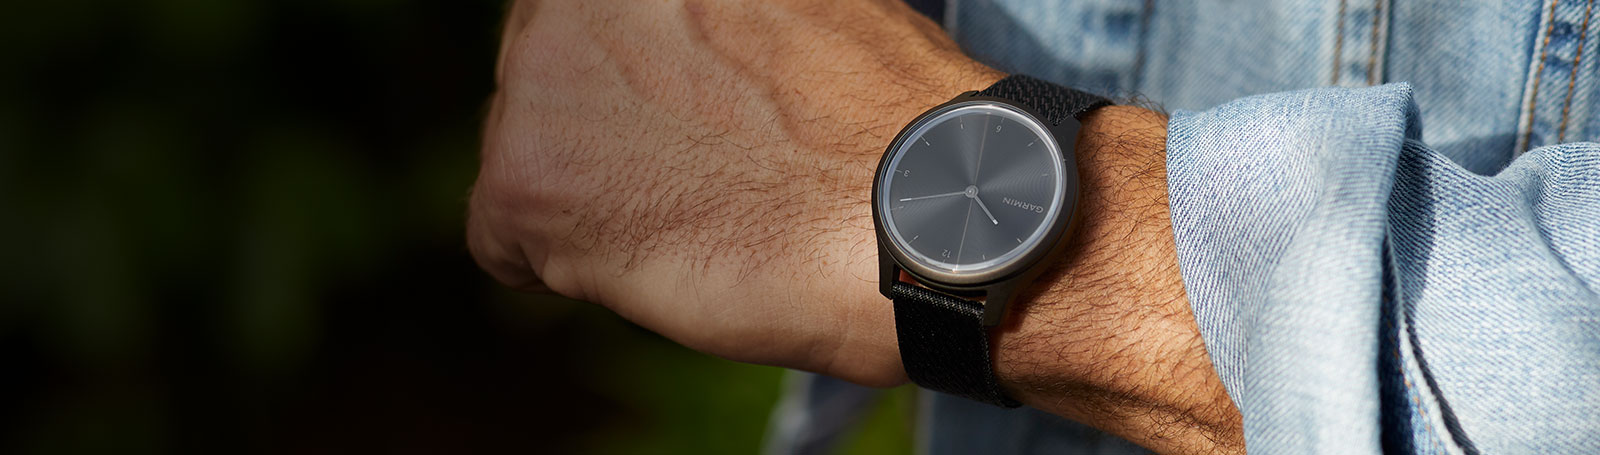 The stylish way to track fitness.